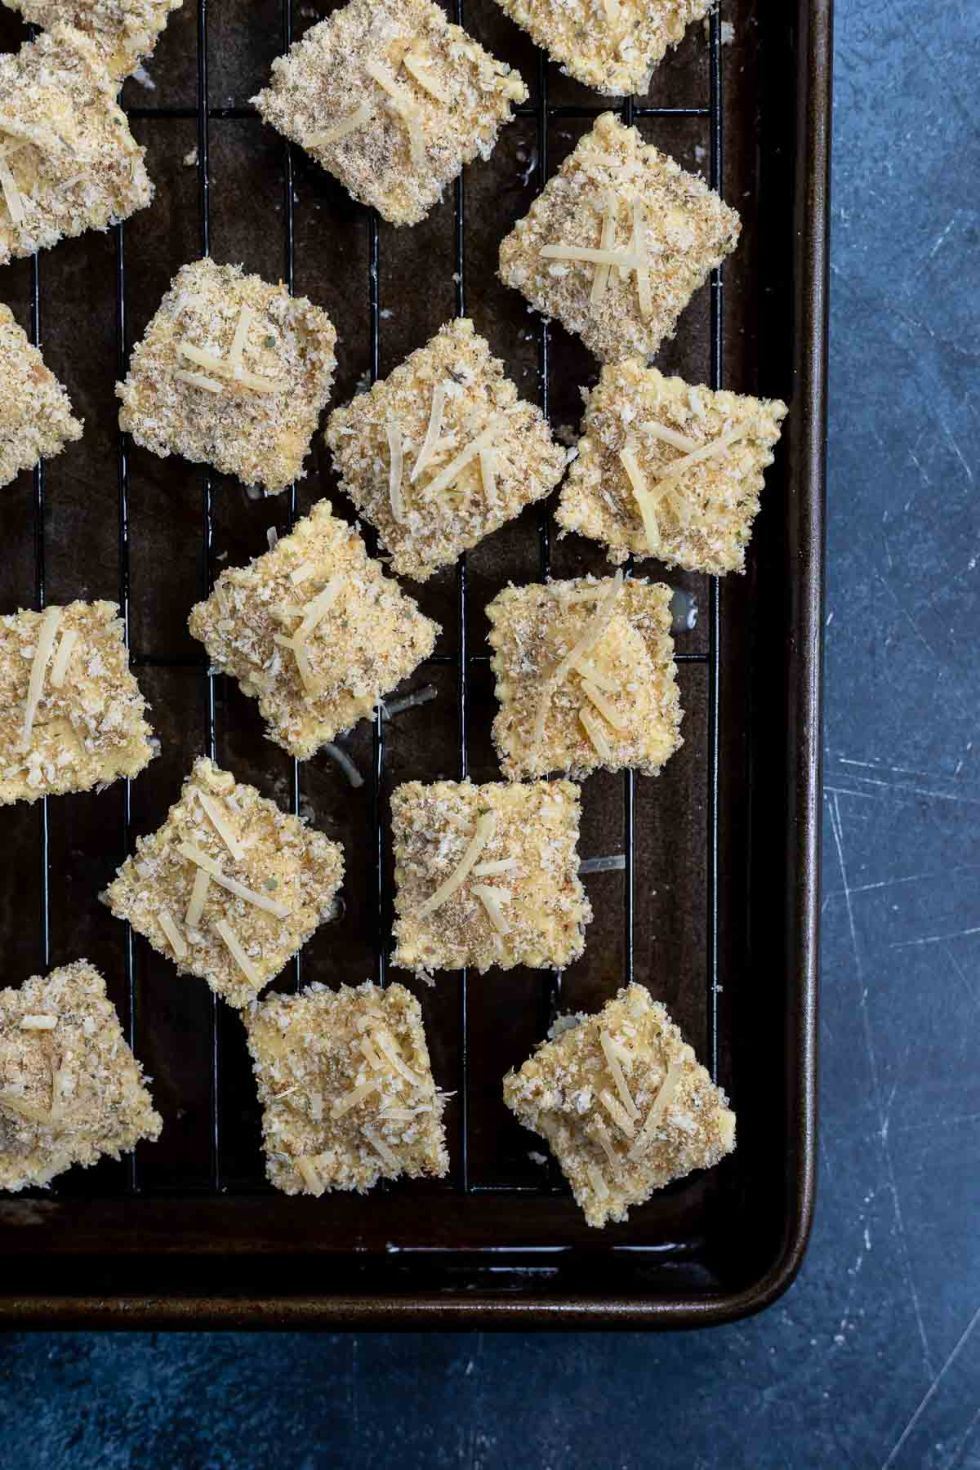 prepared uncooked breaded ravioli on rimmed baking sheet with wire rack